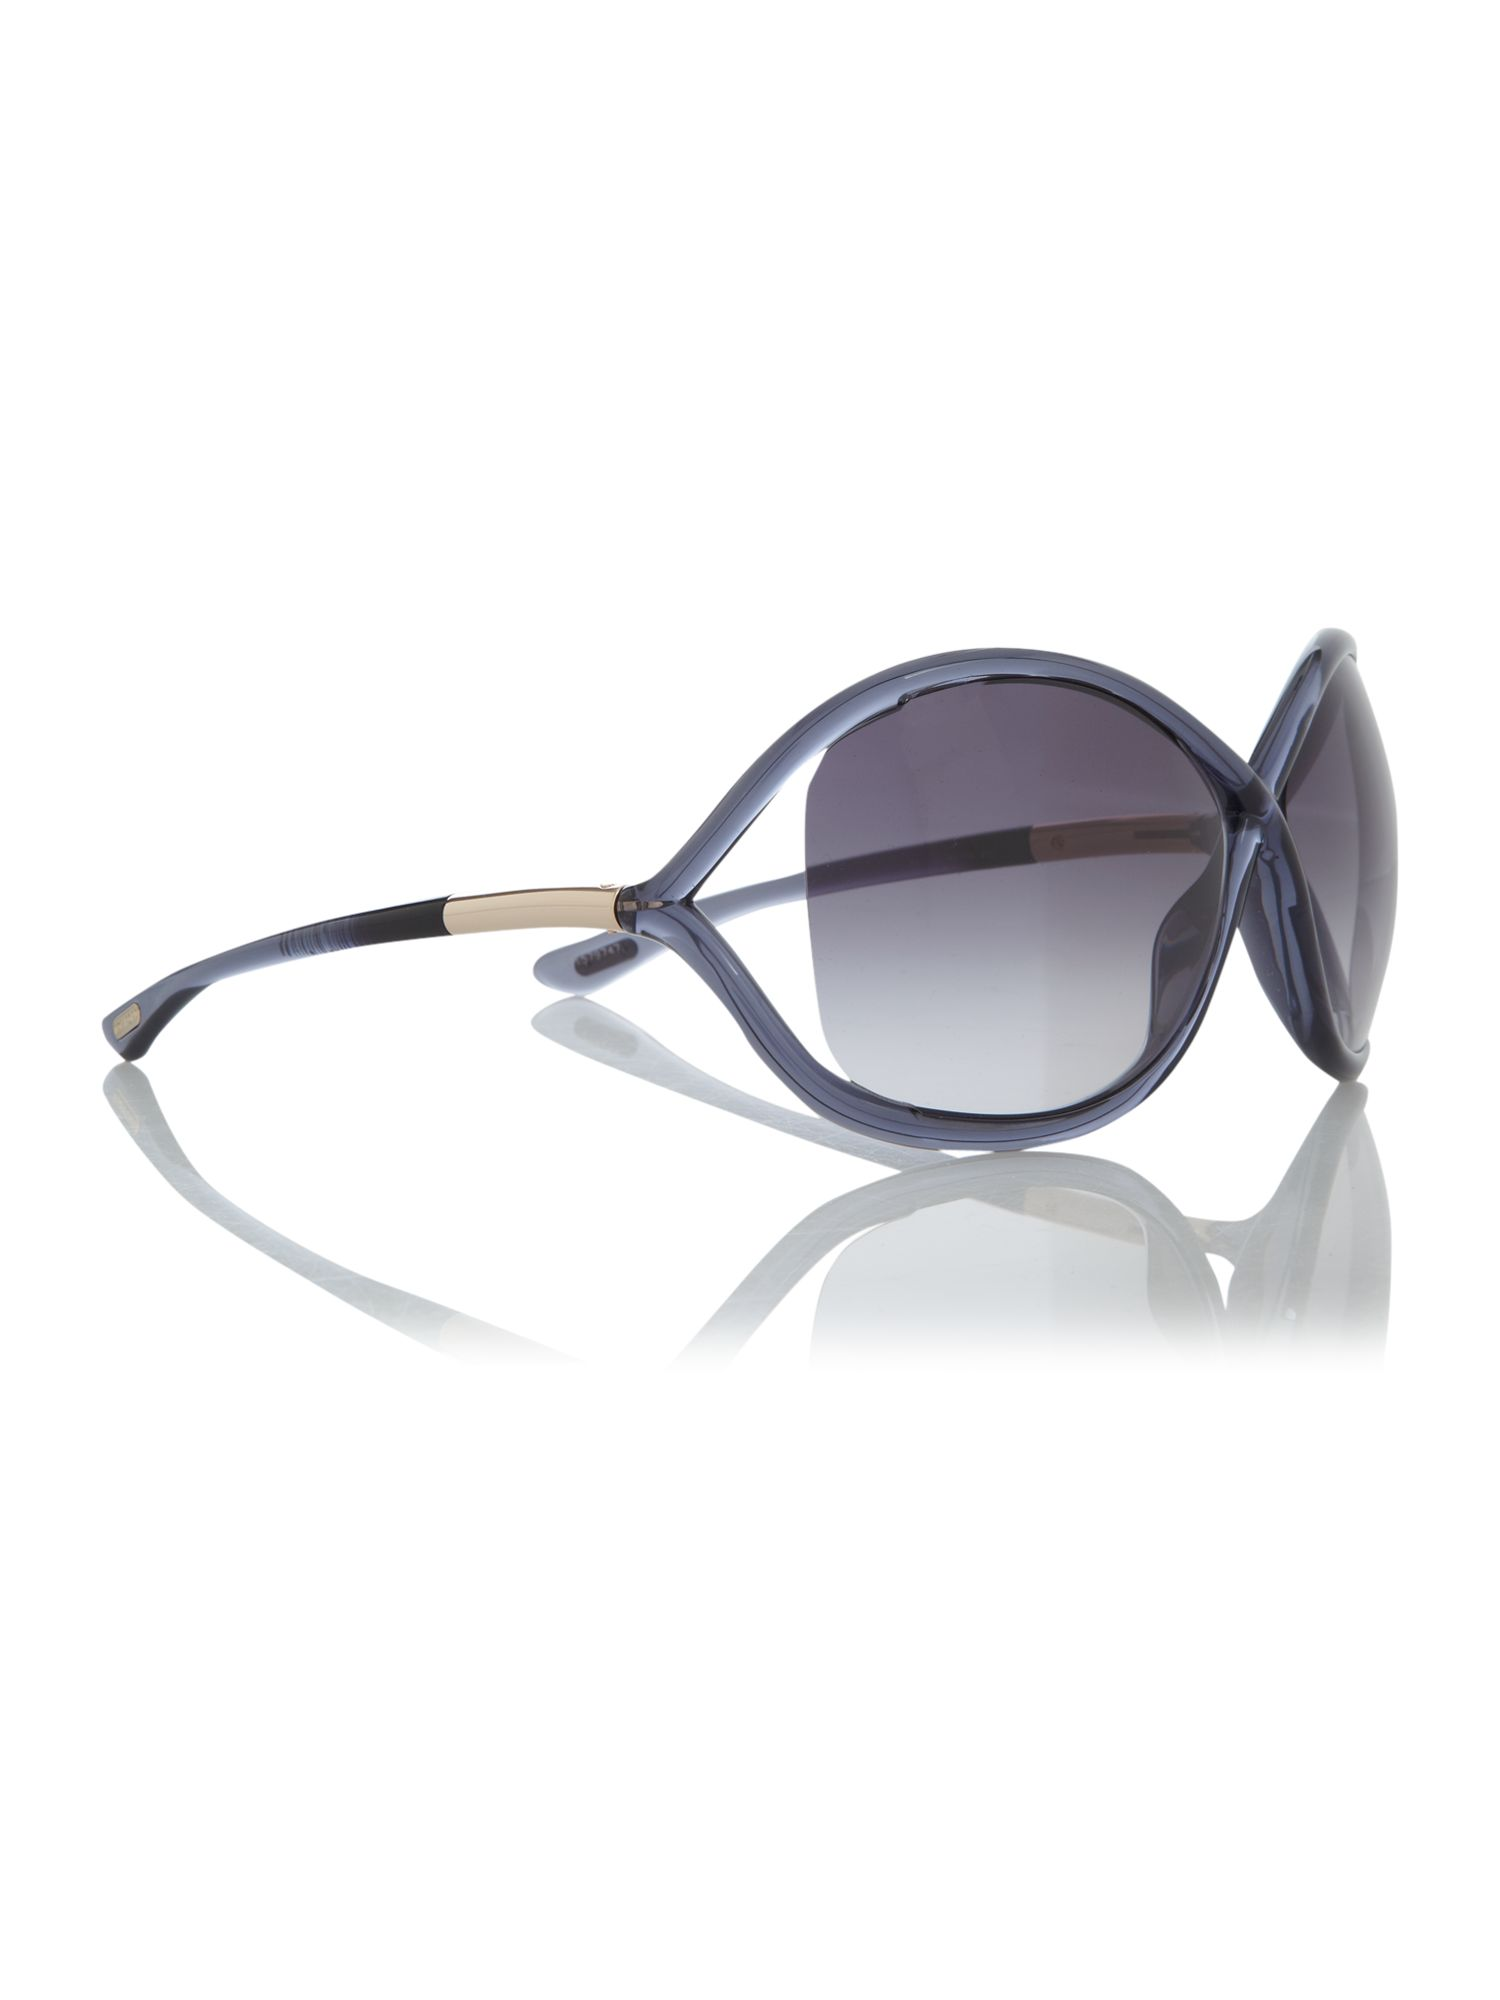 Tom Ford Sunglasses Ladies FT0009 Whitney Sunglasses